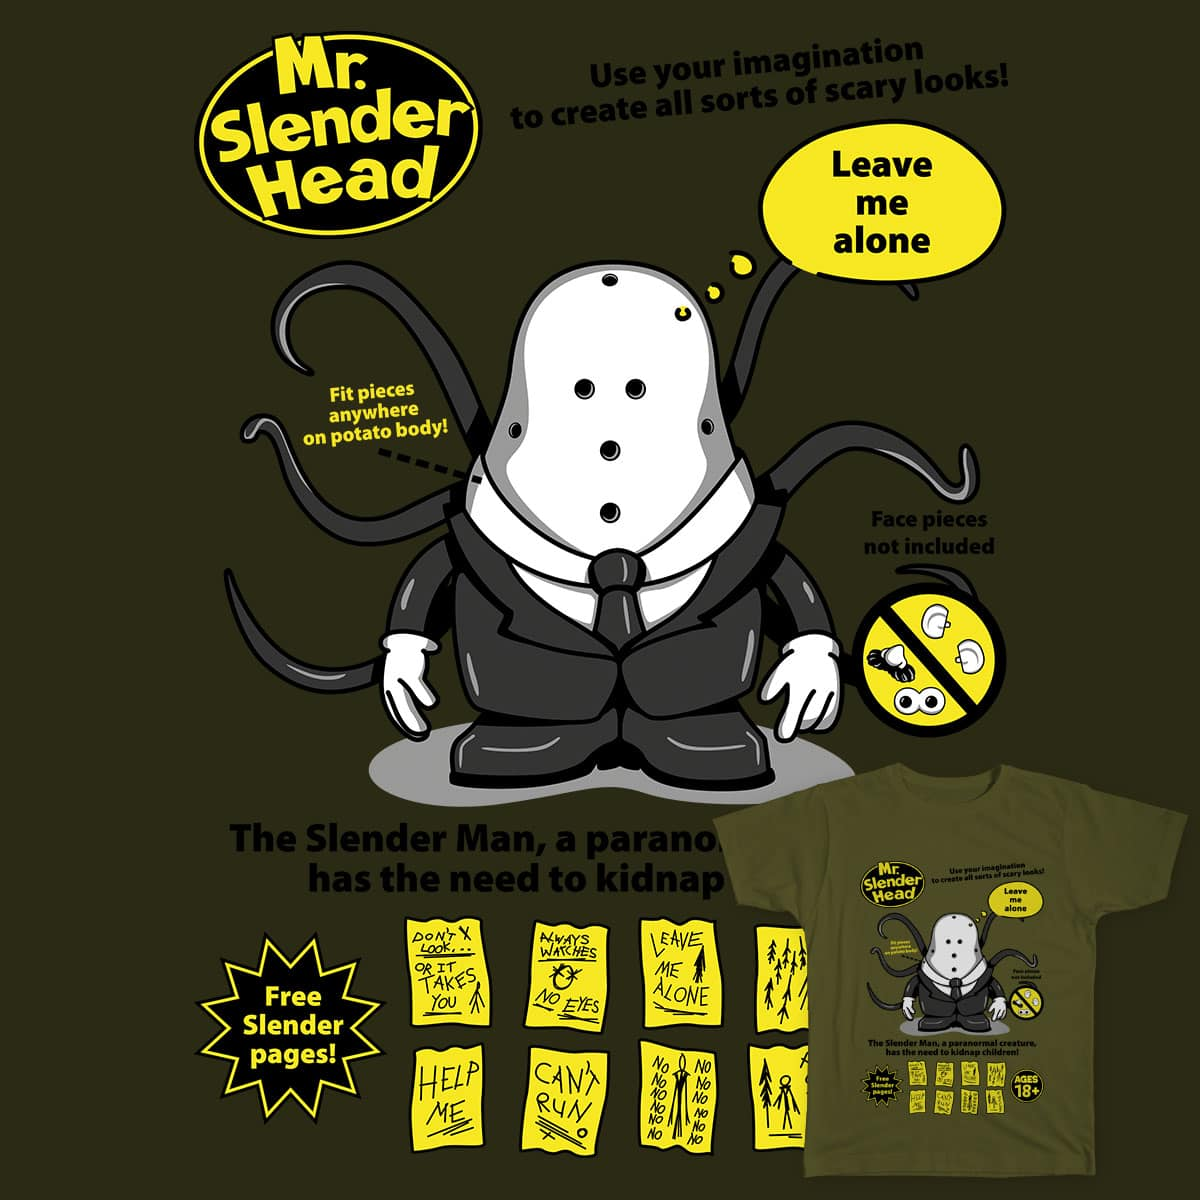 Mr. Slender Head by Olipopart on Threadless